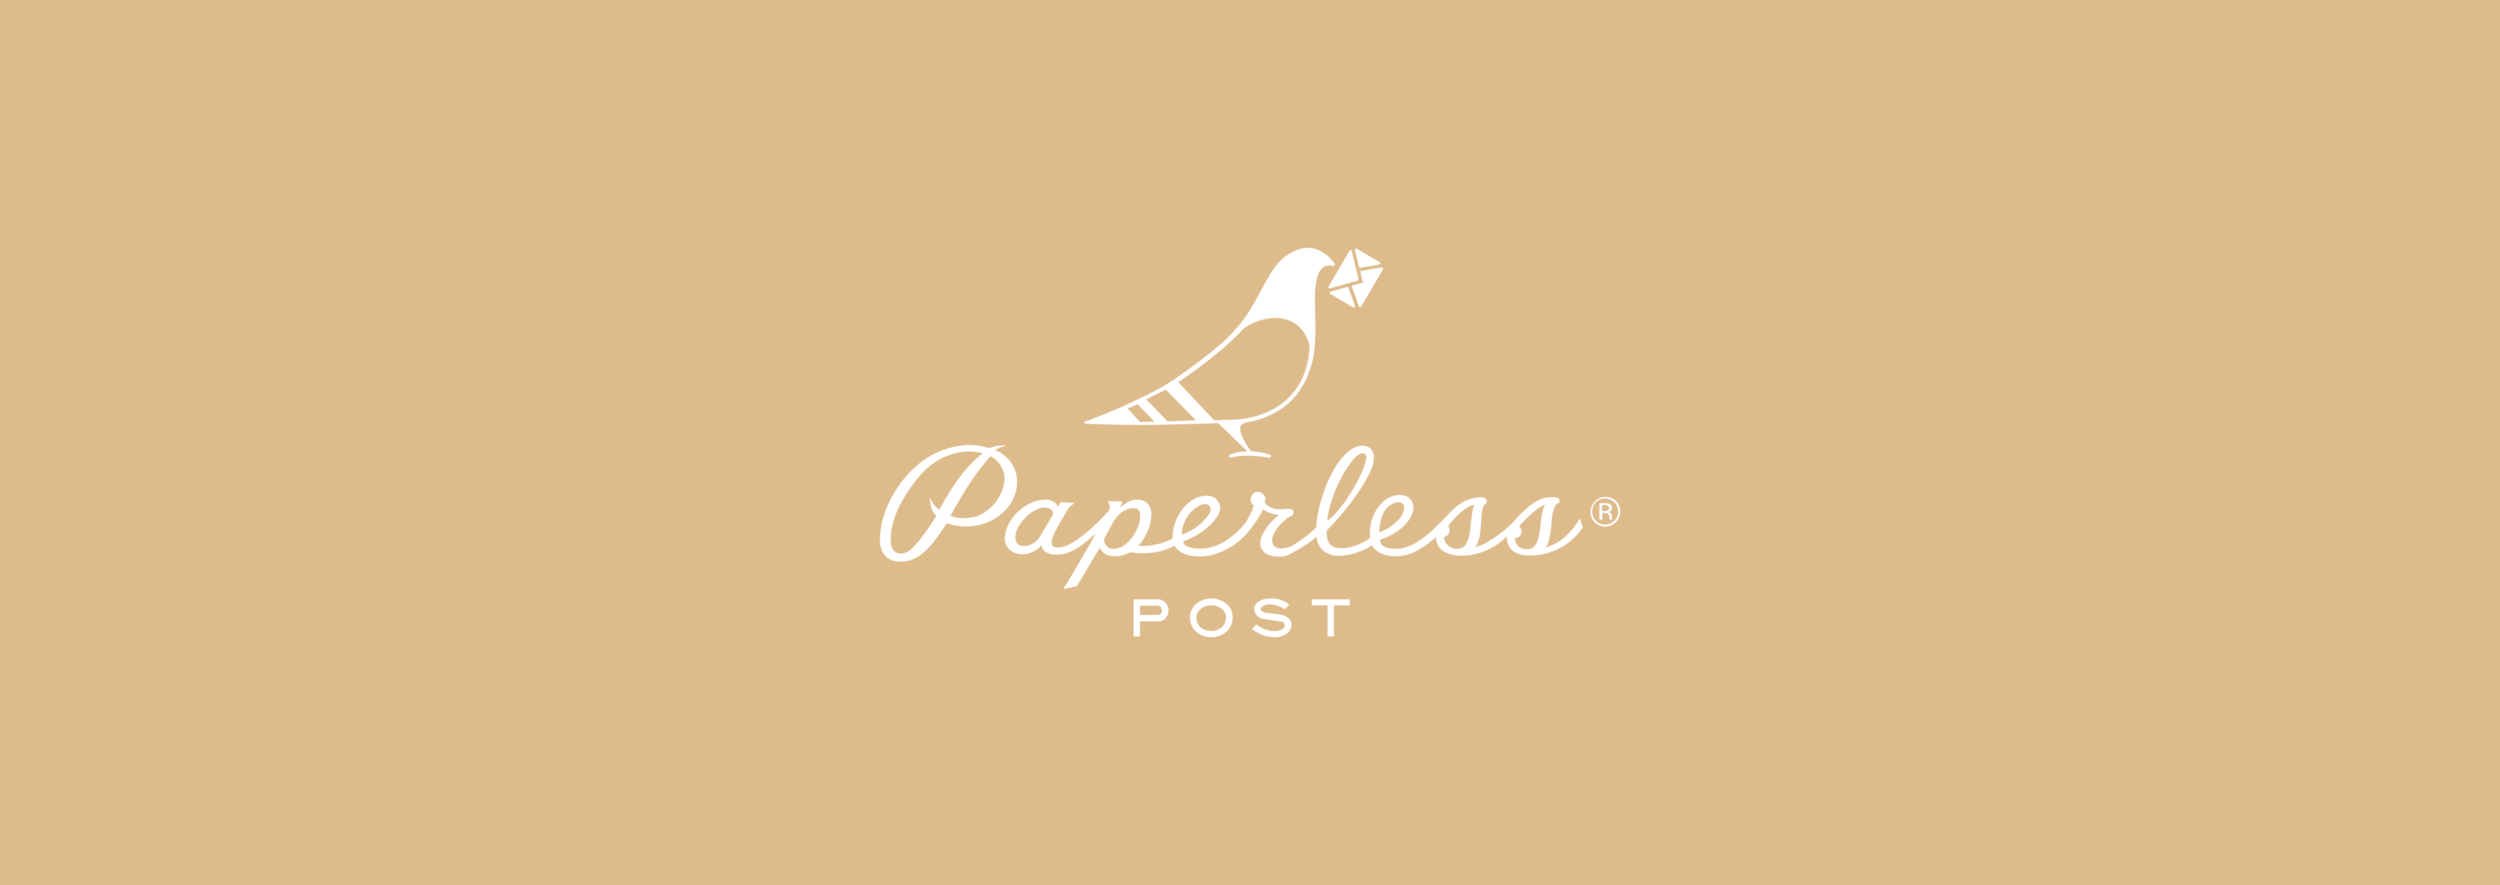 projectcover-paperlesspost@2x.png